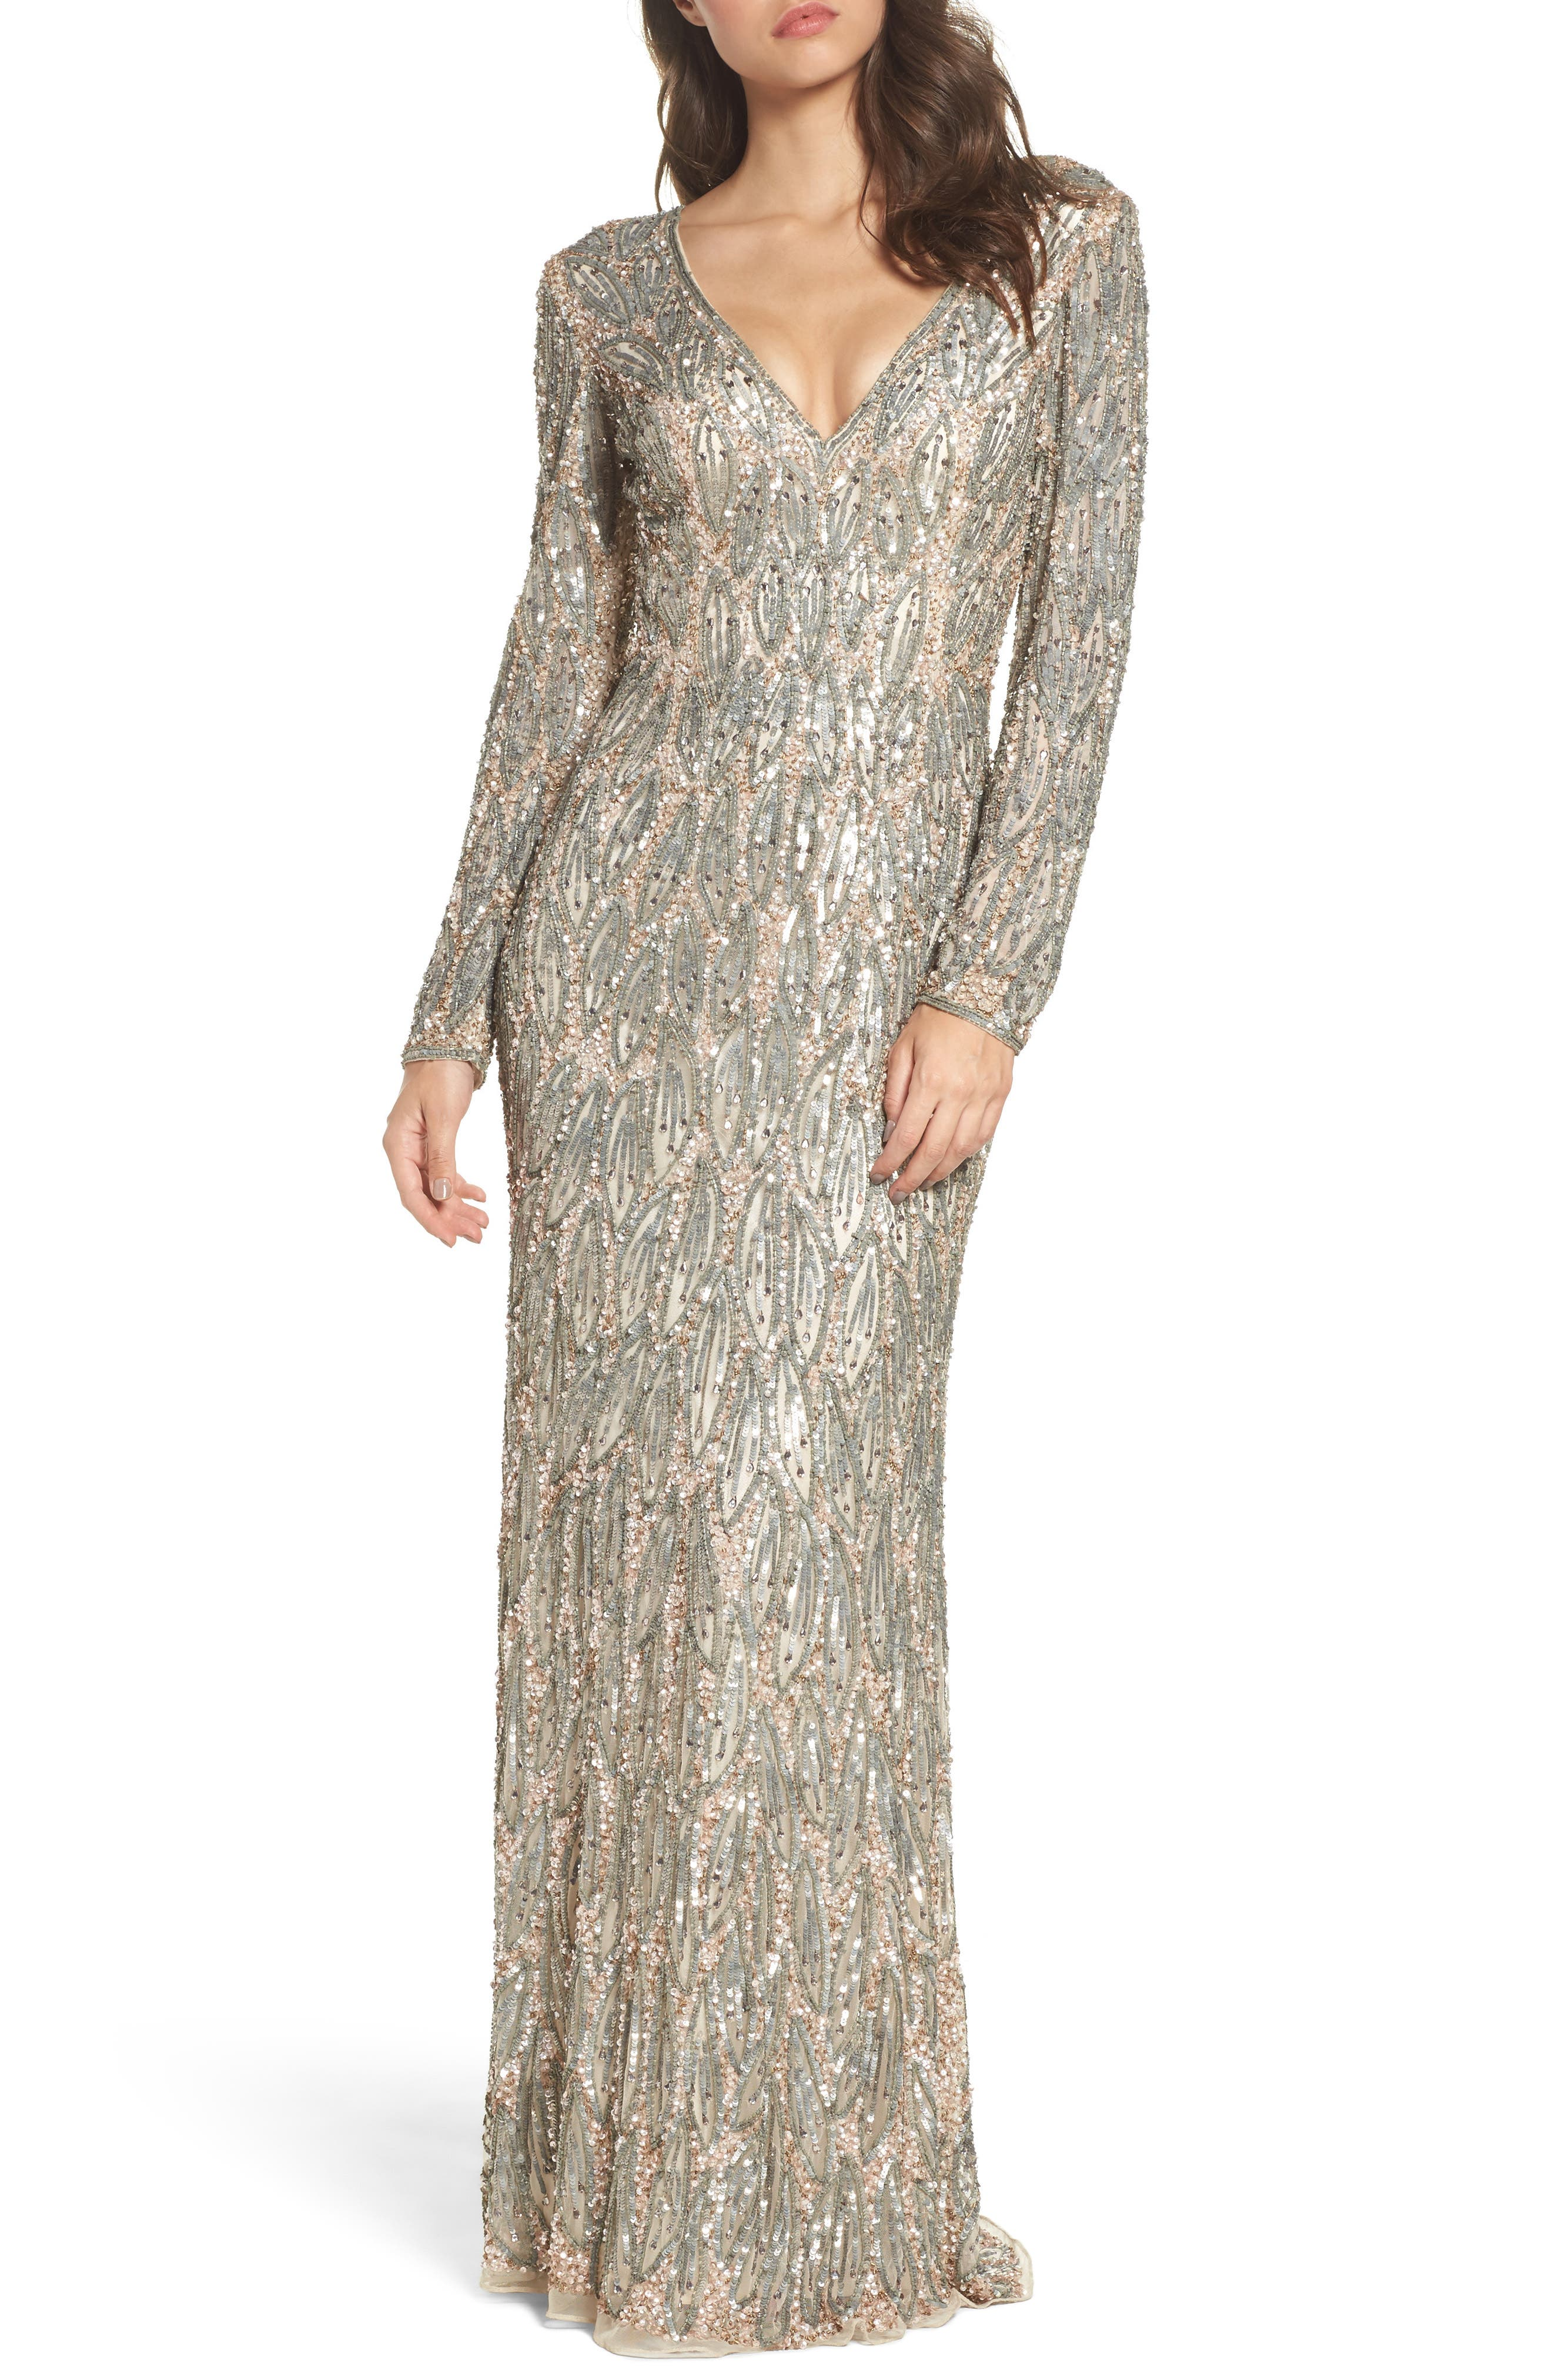 Metallic beads and sequins placed in a dreamy leaf pattern create a lithe V-neck gown with the serene, magical elegance of a willow tree. Style Name: Mac Duggal Beaded Long Sleeve Gown. Style Number: 5458638 1. Available in stores.